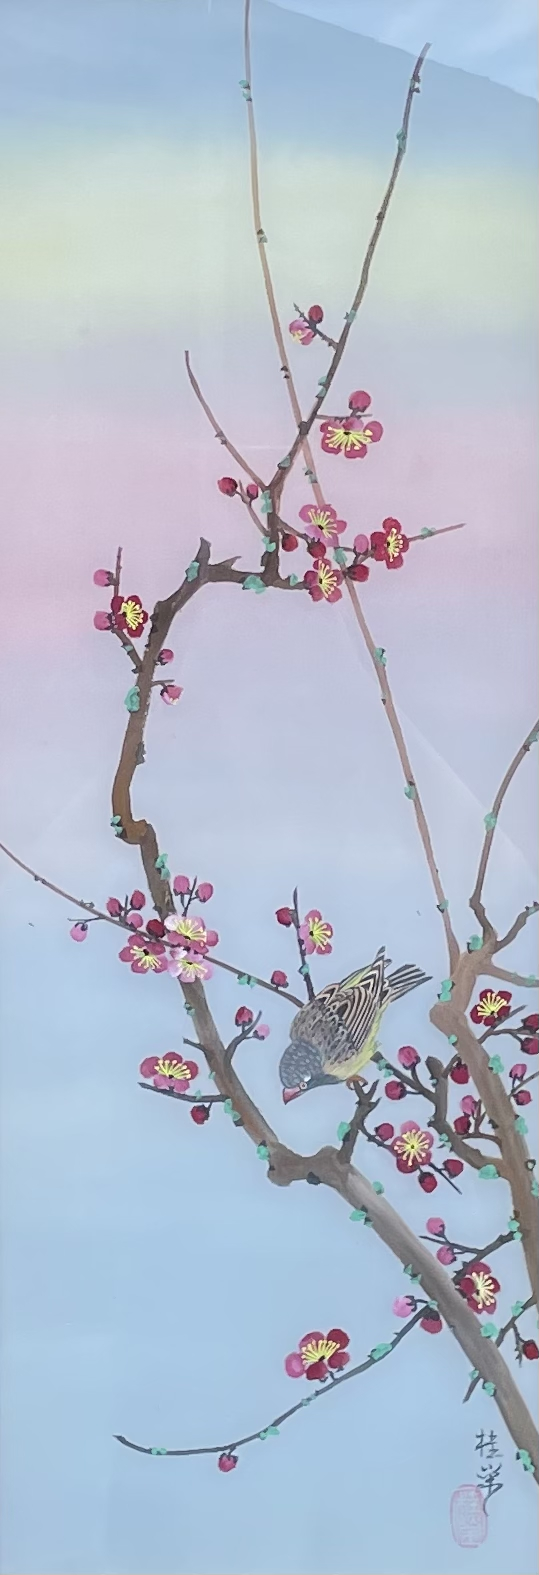 Bird on Plum Blossoms